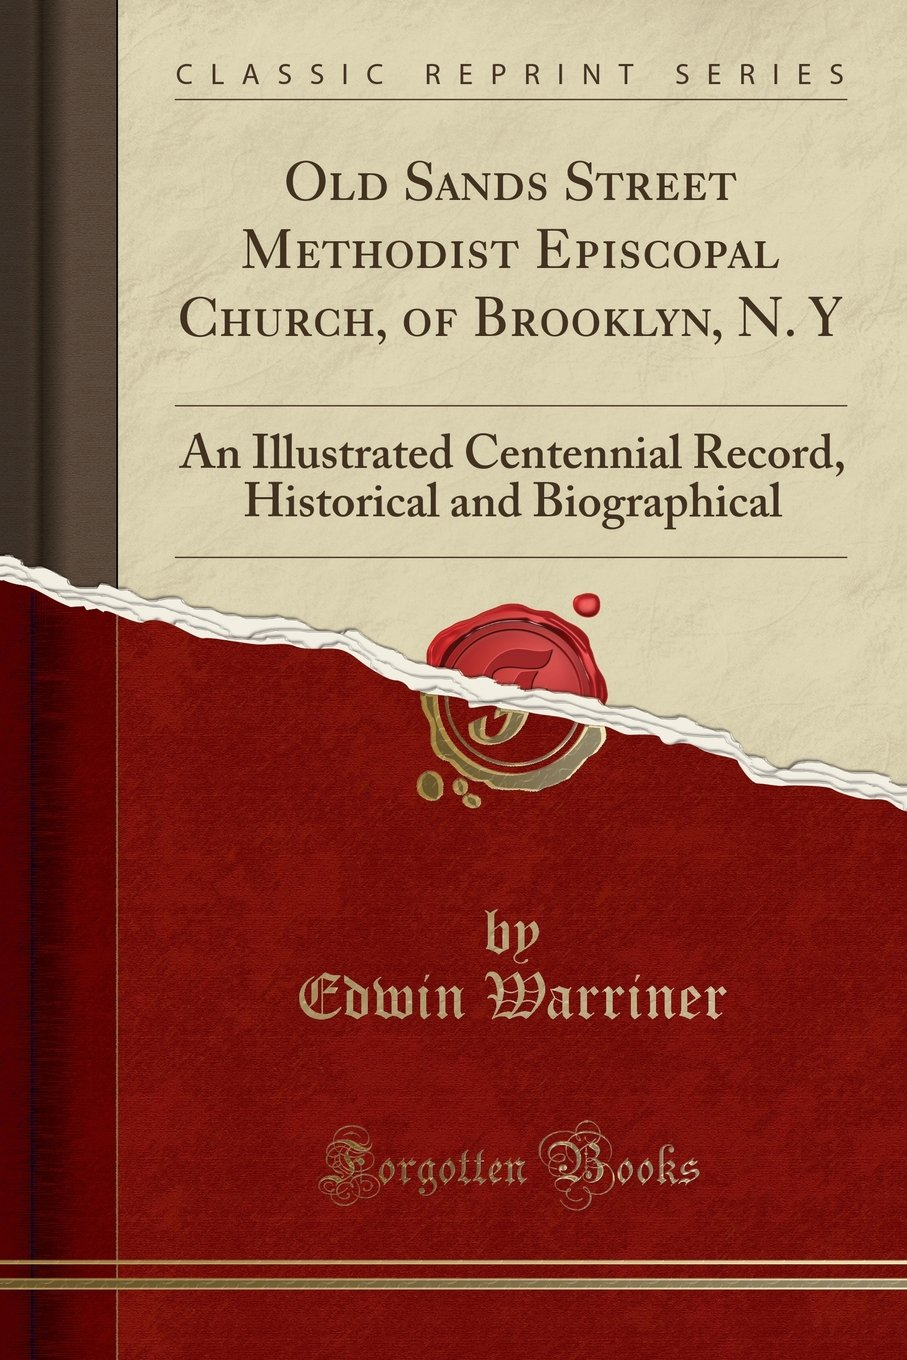 Download Old Sands Street Methodist Episcopal Church, of Brooklyn, N. Y: An Illustrated Centennial Record, Historical and Biographical (Classic Reprint) PDF